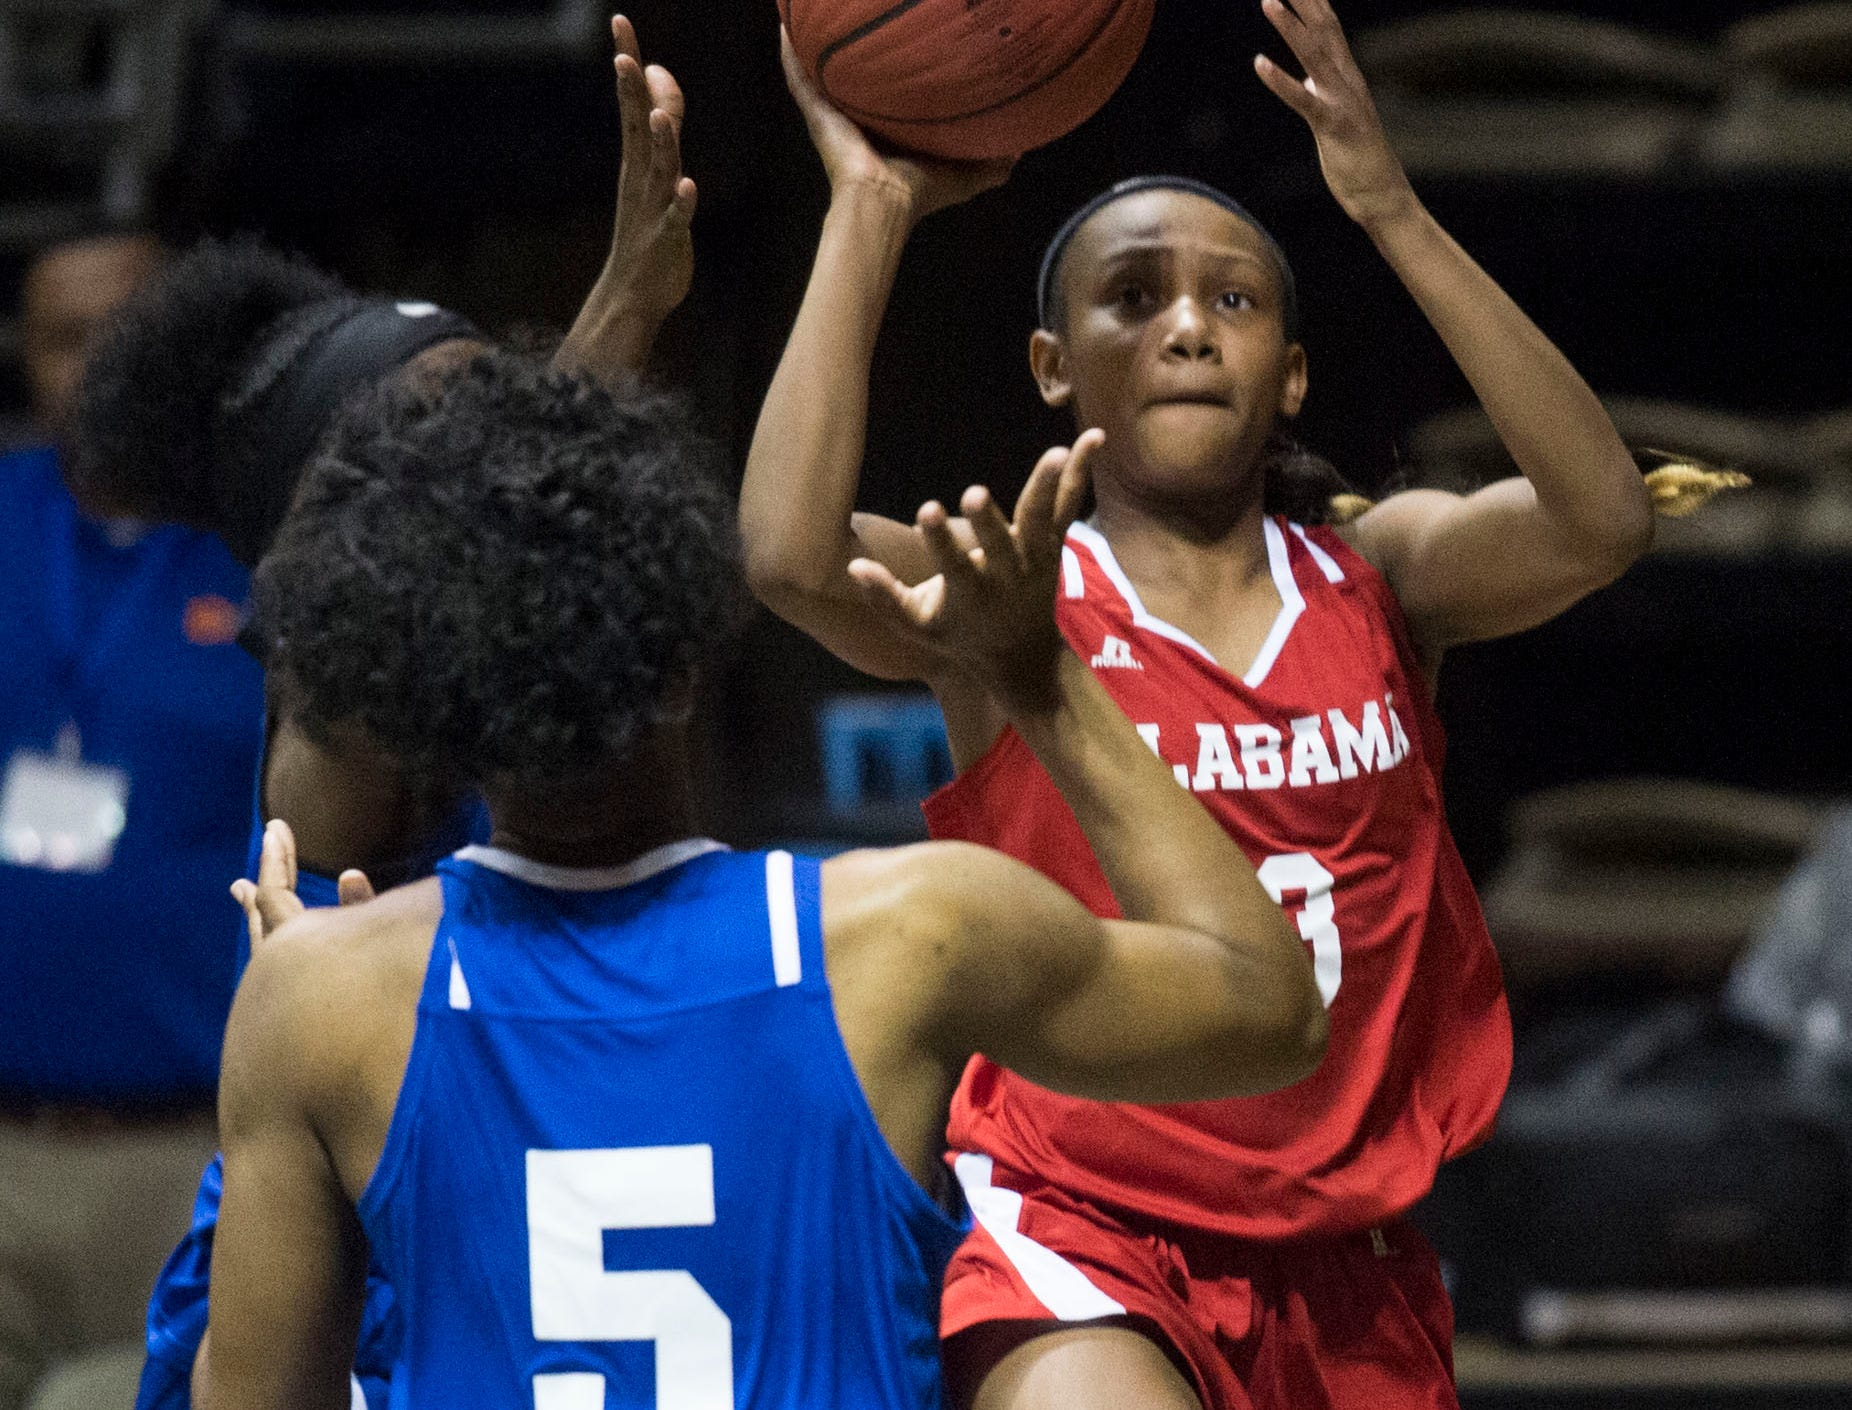 Alabama's Marisa Snodgrass (3) goes up for a layup during the Alabama-Mississippi All-Star game at the Dunn-Oliver Acadome in Montgomery, Ala., on Friday, March 15, 2019. Alabama All-stars lead the Mississippi All-stars 48-34 at halftime.